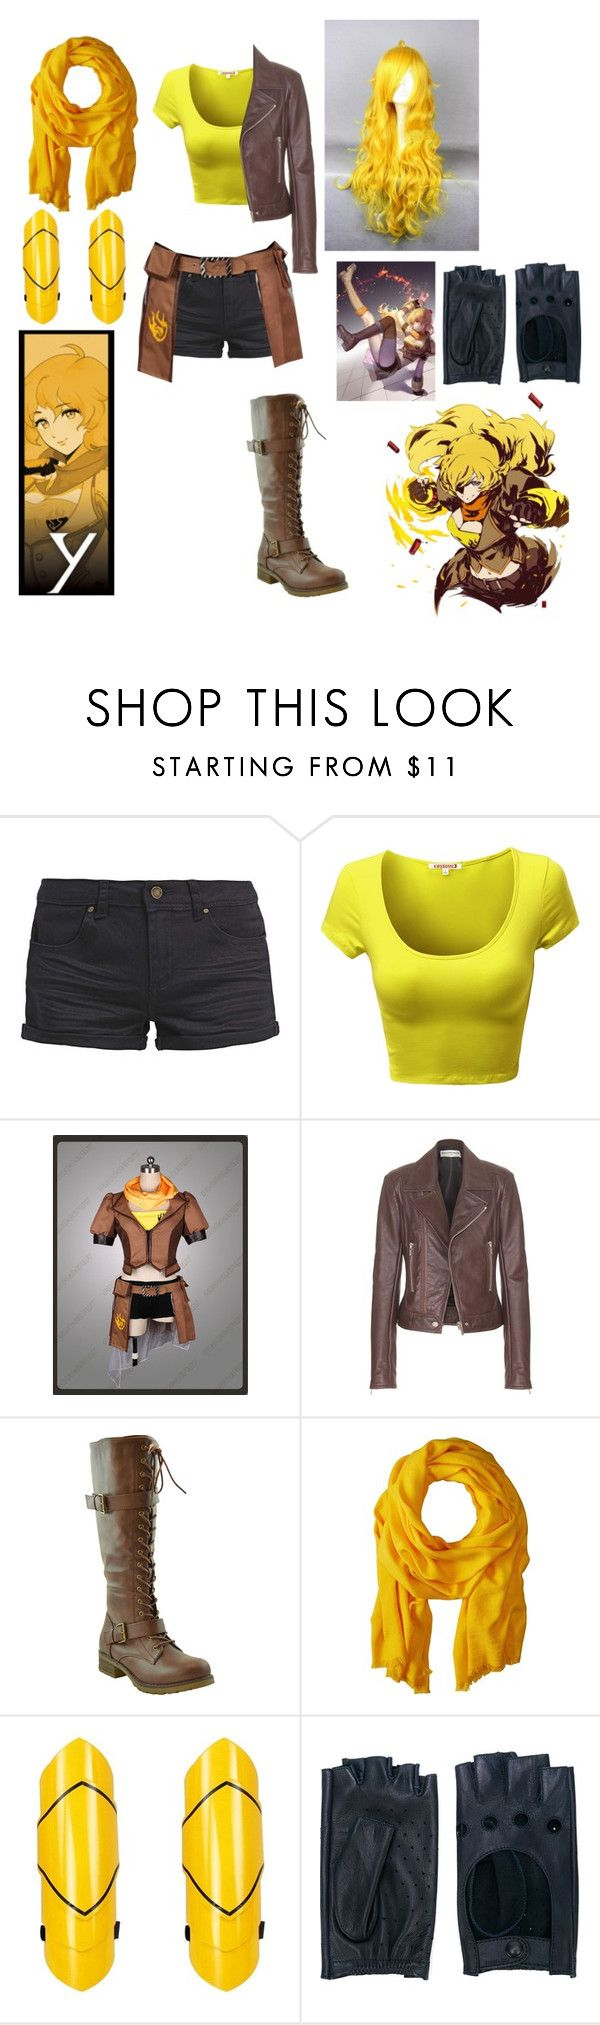 """RWBY Yang Xiao Long Casual Cosplay"" by chibi-shinigami ❤ liked on Polyvore featuring TWINTIP, Balenciaga, Love Quotes Scarves, Zanellato, CasualCosplay, yang, RWBY and yangxiaolong"